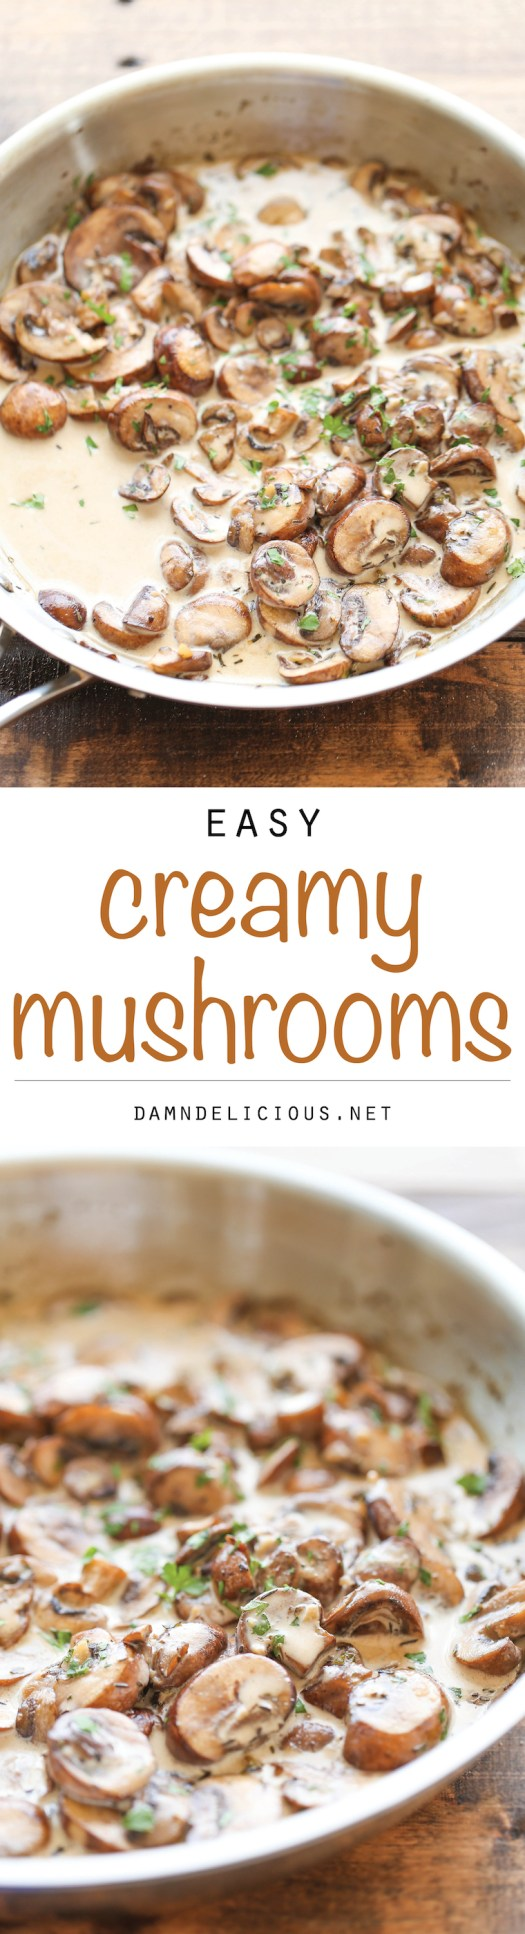 Easy Creamy Mushrooms - The easiest, creamiest mushrooms you will ever have – it's so good, you'll want to skip the main dish and make this a meal instead!